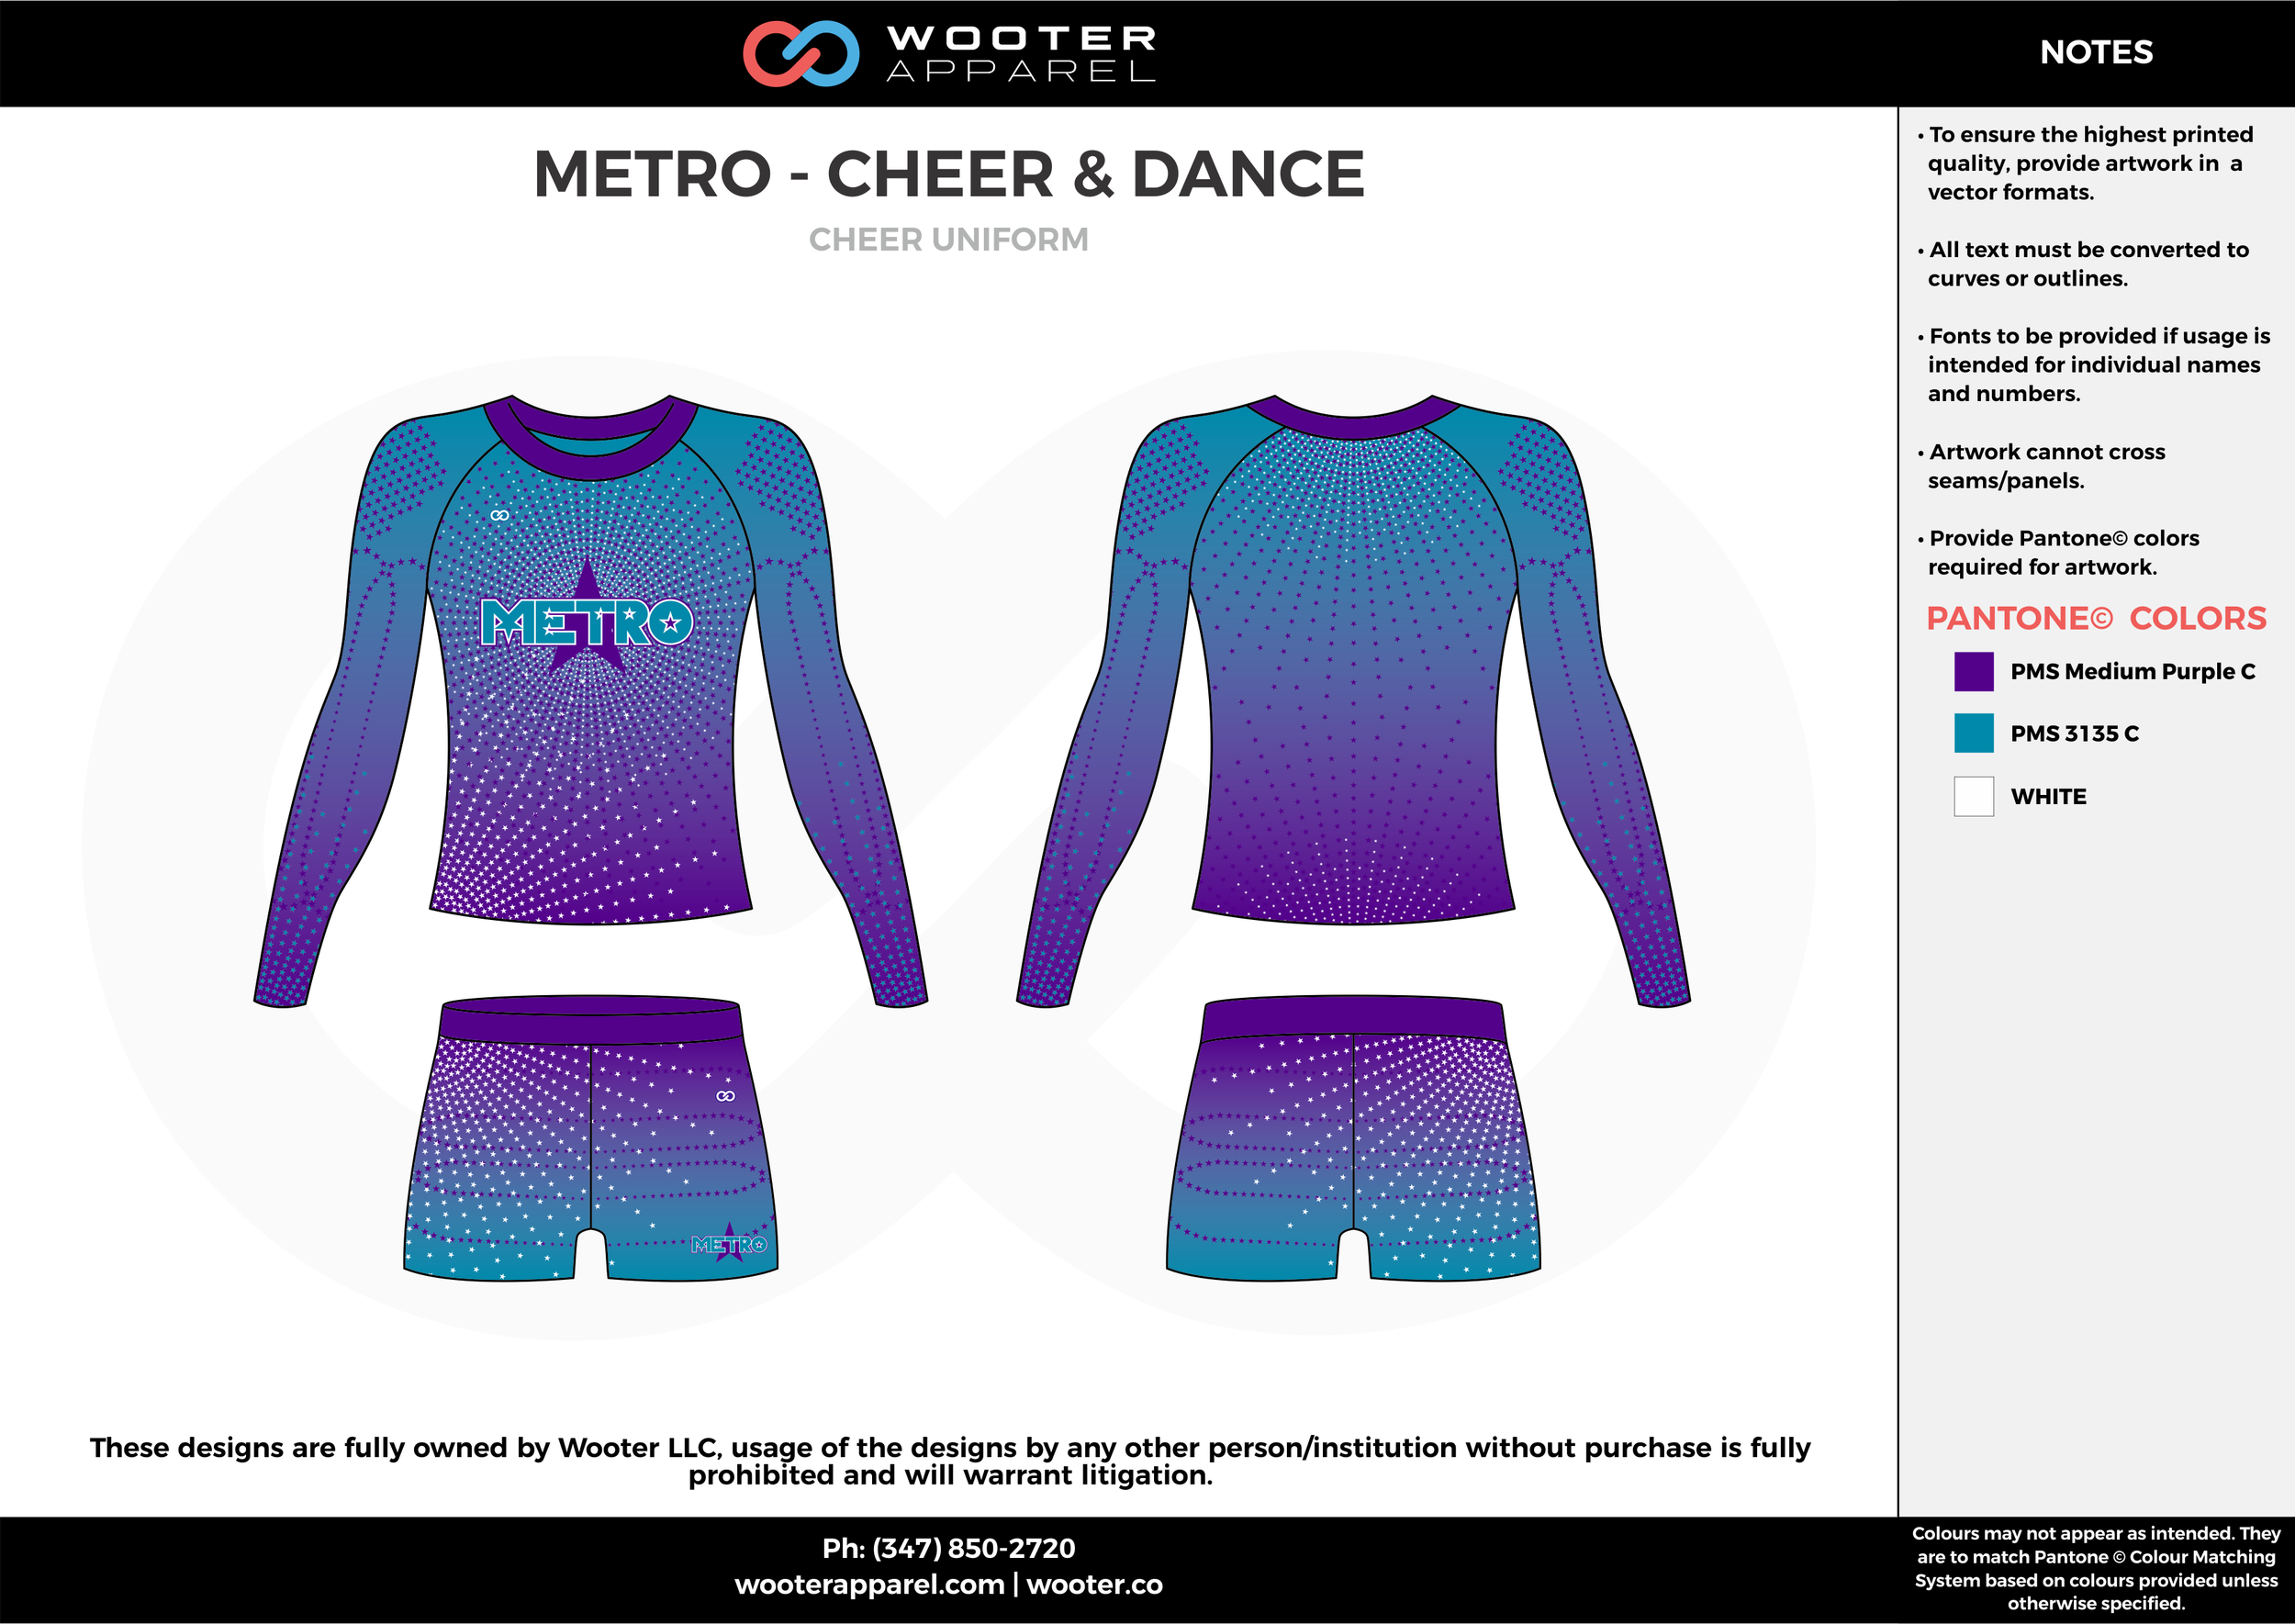 METRO-CHEER & DANCE blue violet cheerleading uniforms, top, and shorts